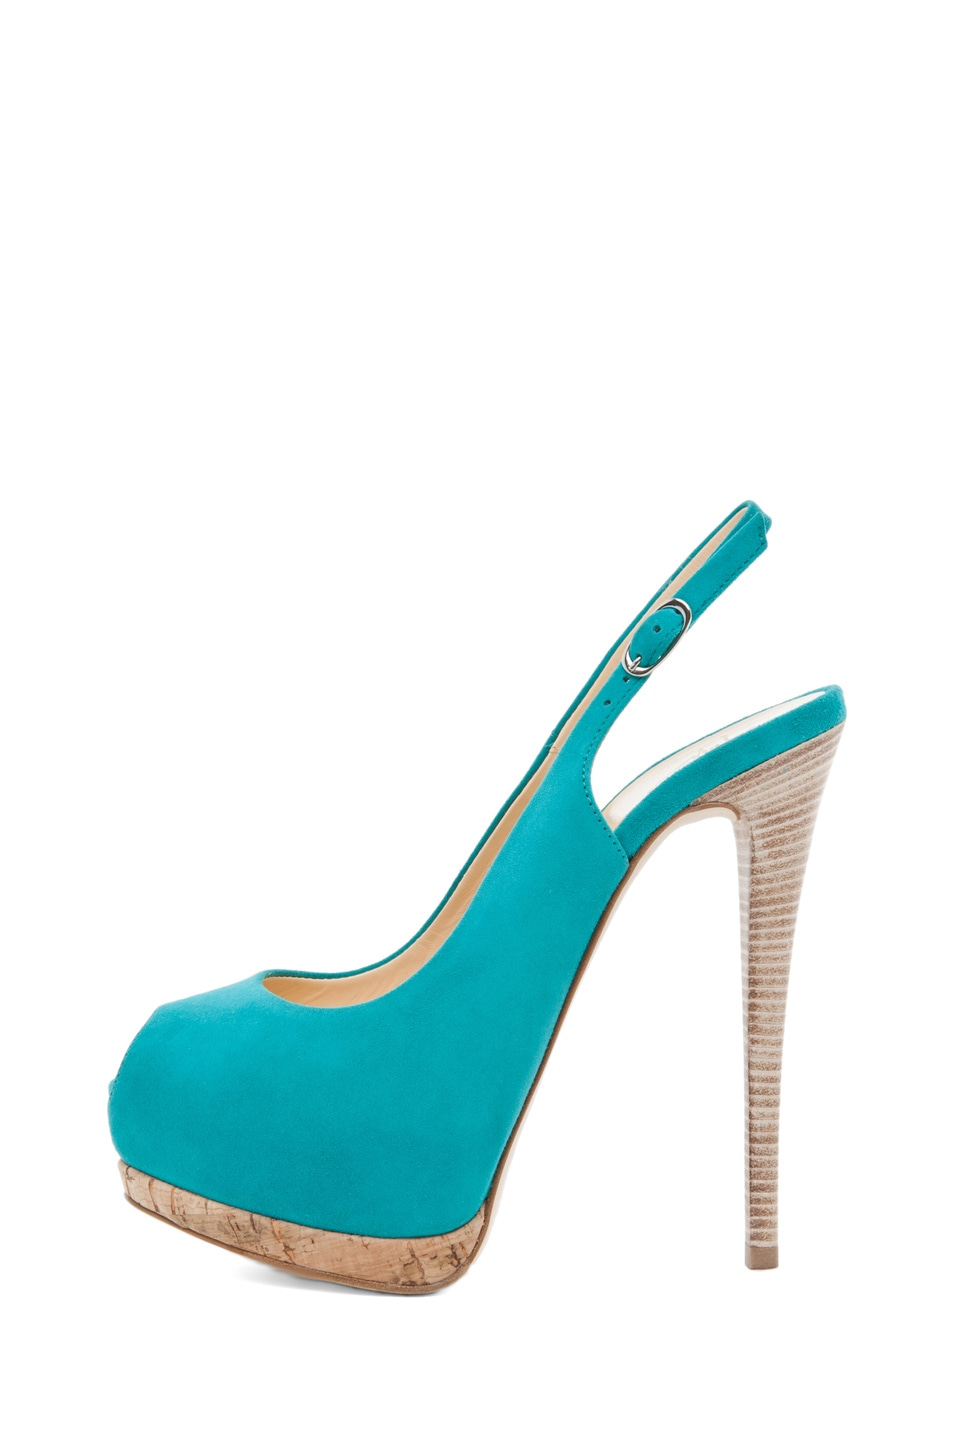 Image 1 of Giuseppe Zanotti Sling Back Cork Pump in Turquoise